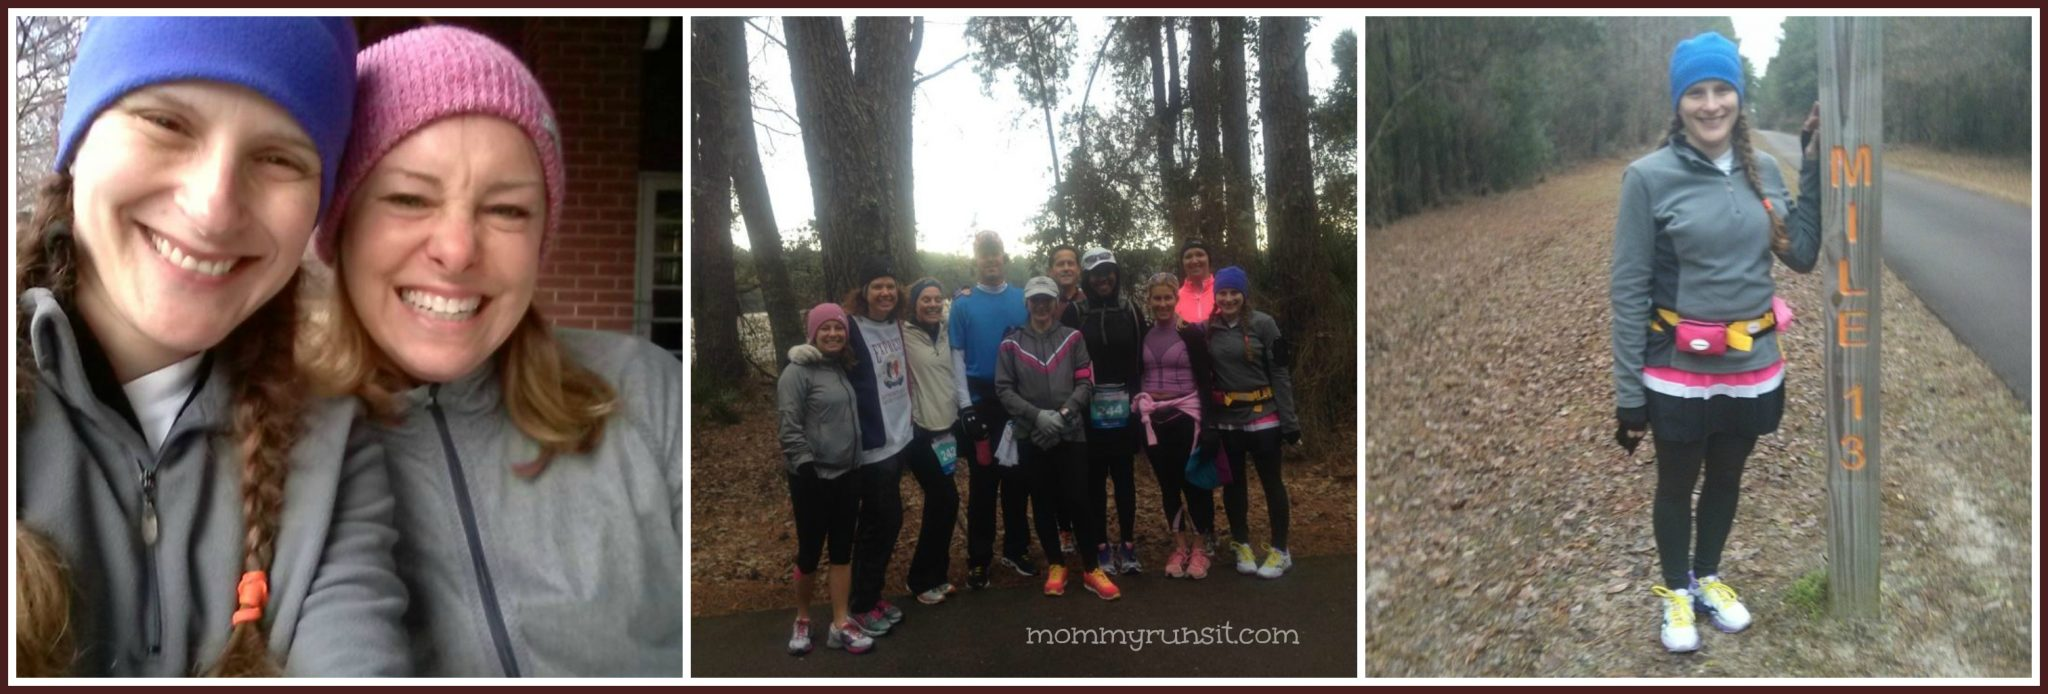 Galloway Training Program | Marathon, Training Run, or Both? | Mommy Runs It